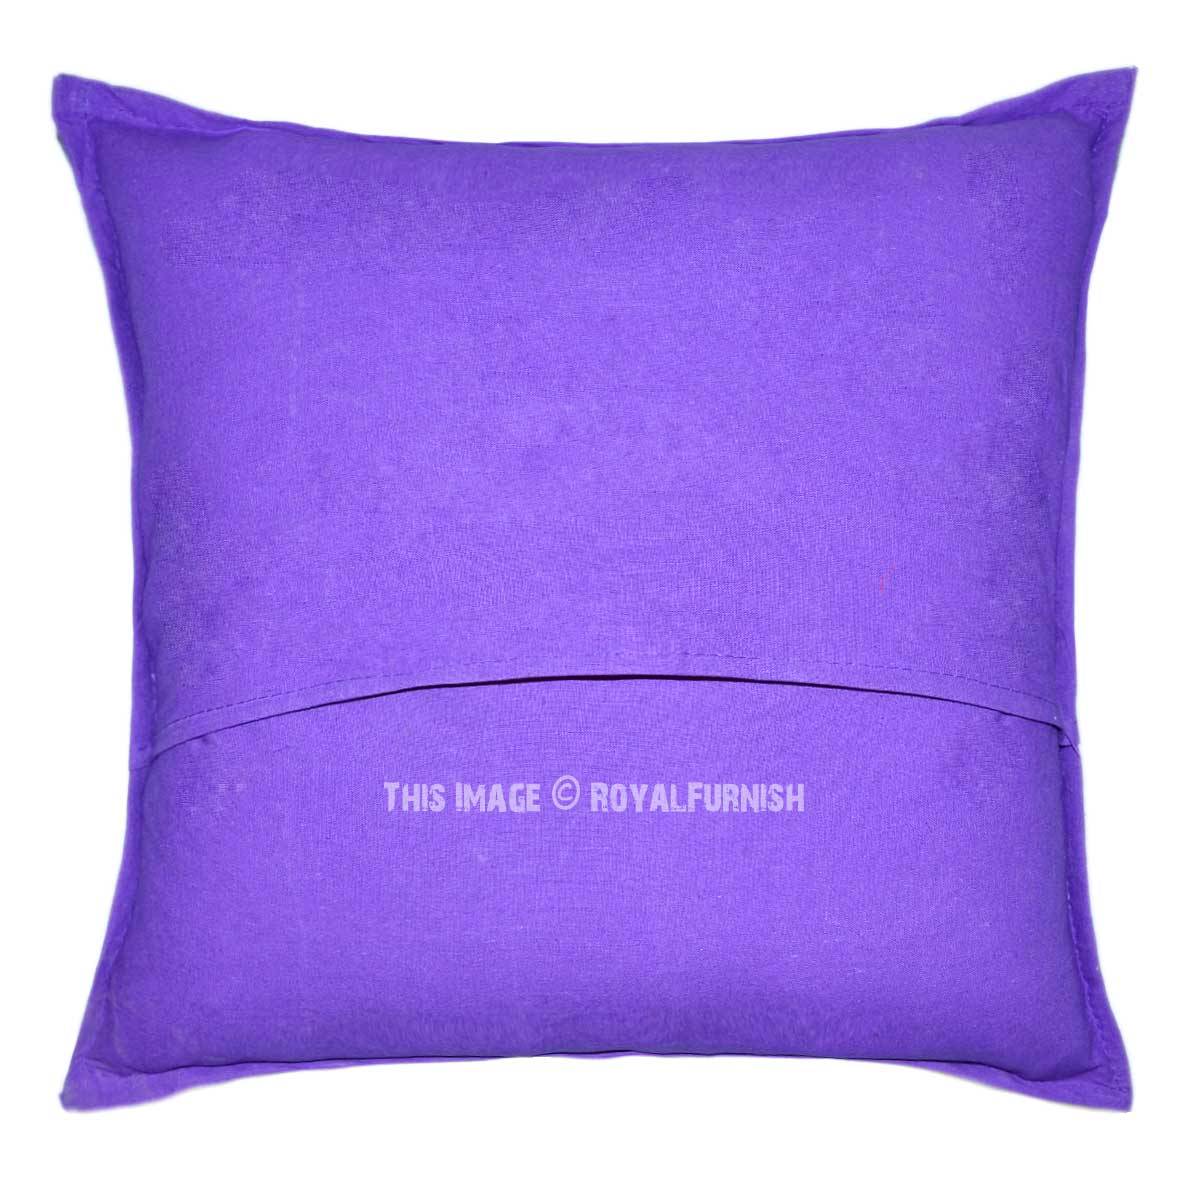 Throw Me A Pillow Coupon Code : Purple One-Of-A-Kind Unique Bohemian Patchwork Throw Pillow Case 18X18 - RoyalFurnish.com